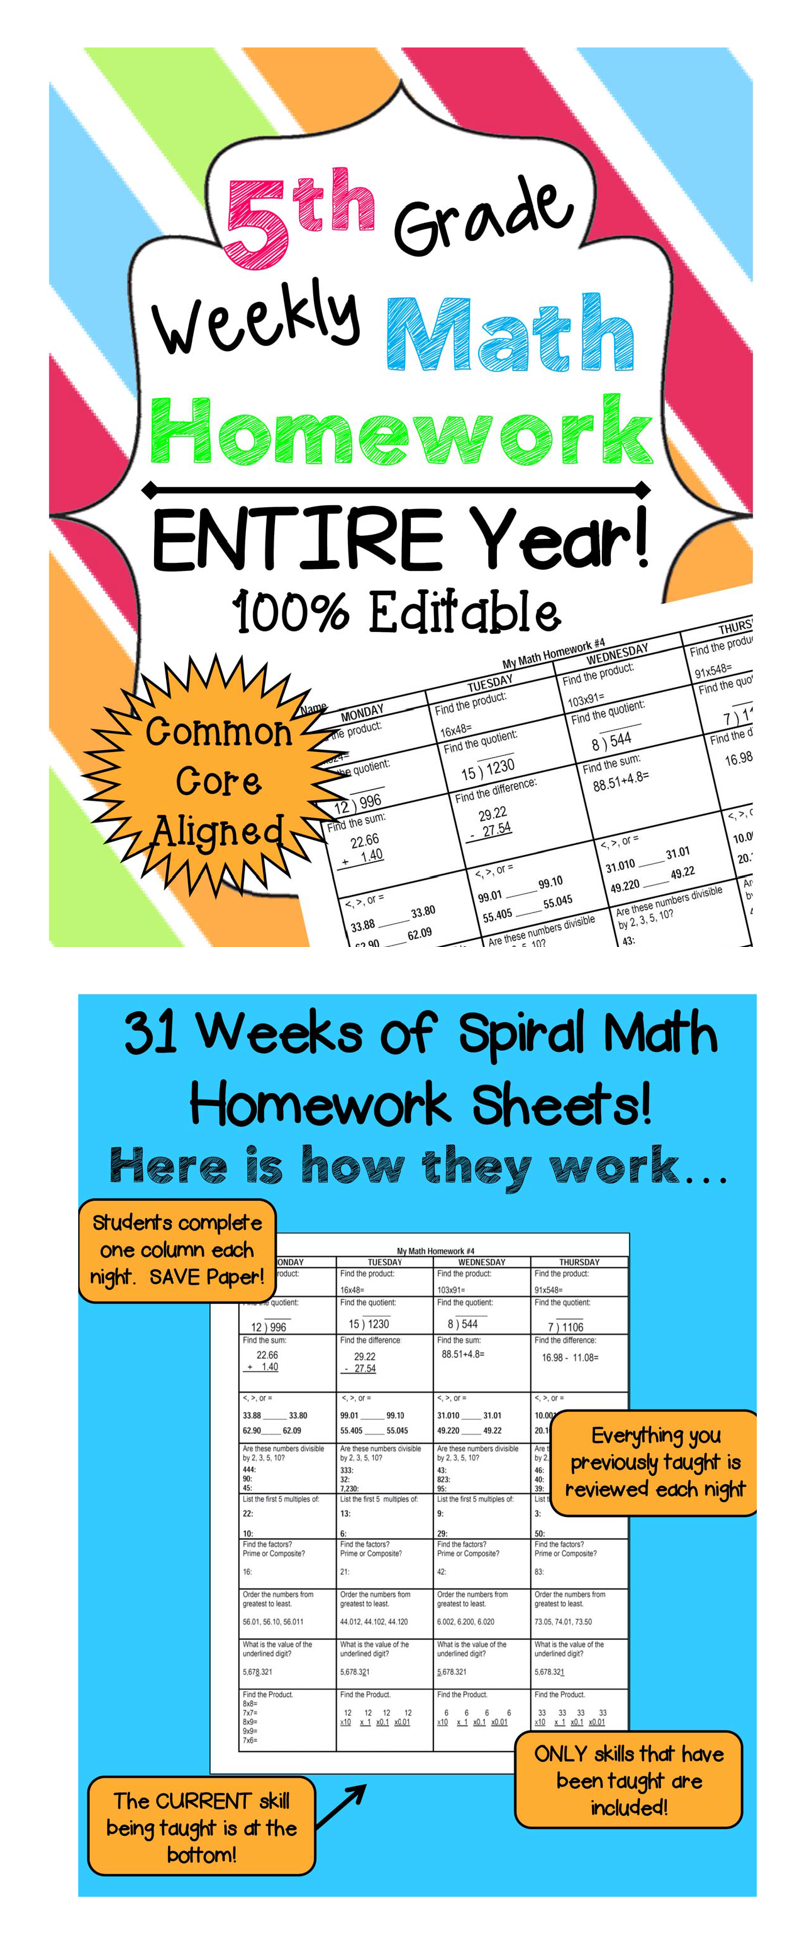 Homework help 5th grade math